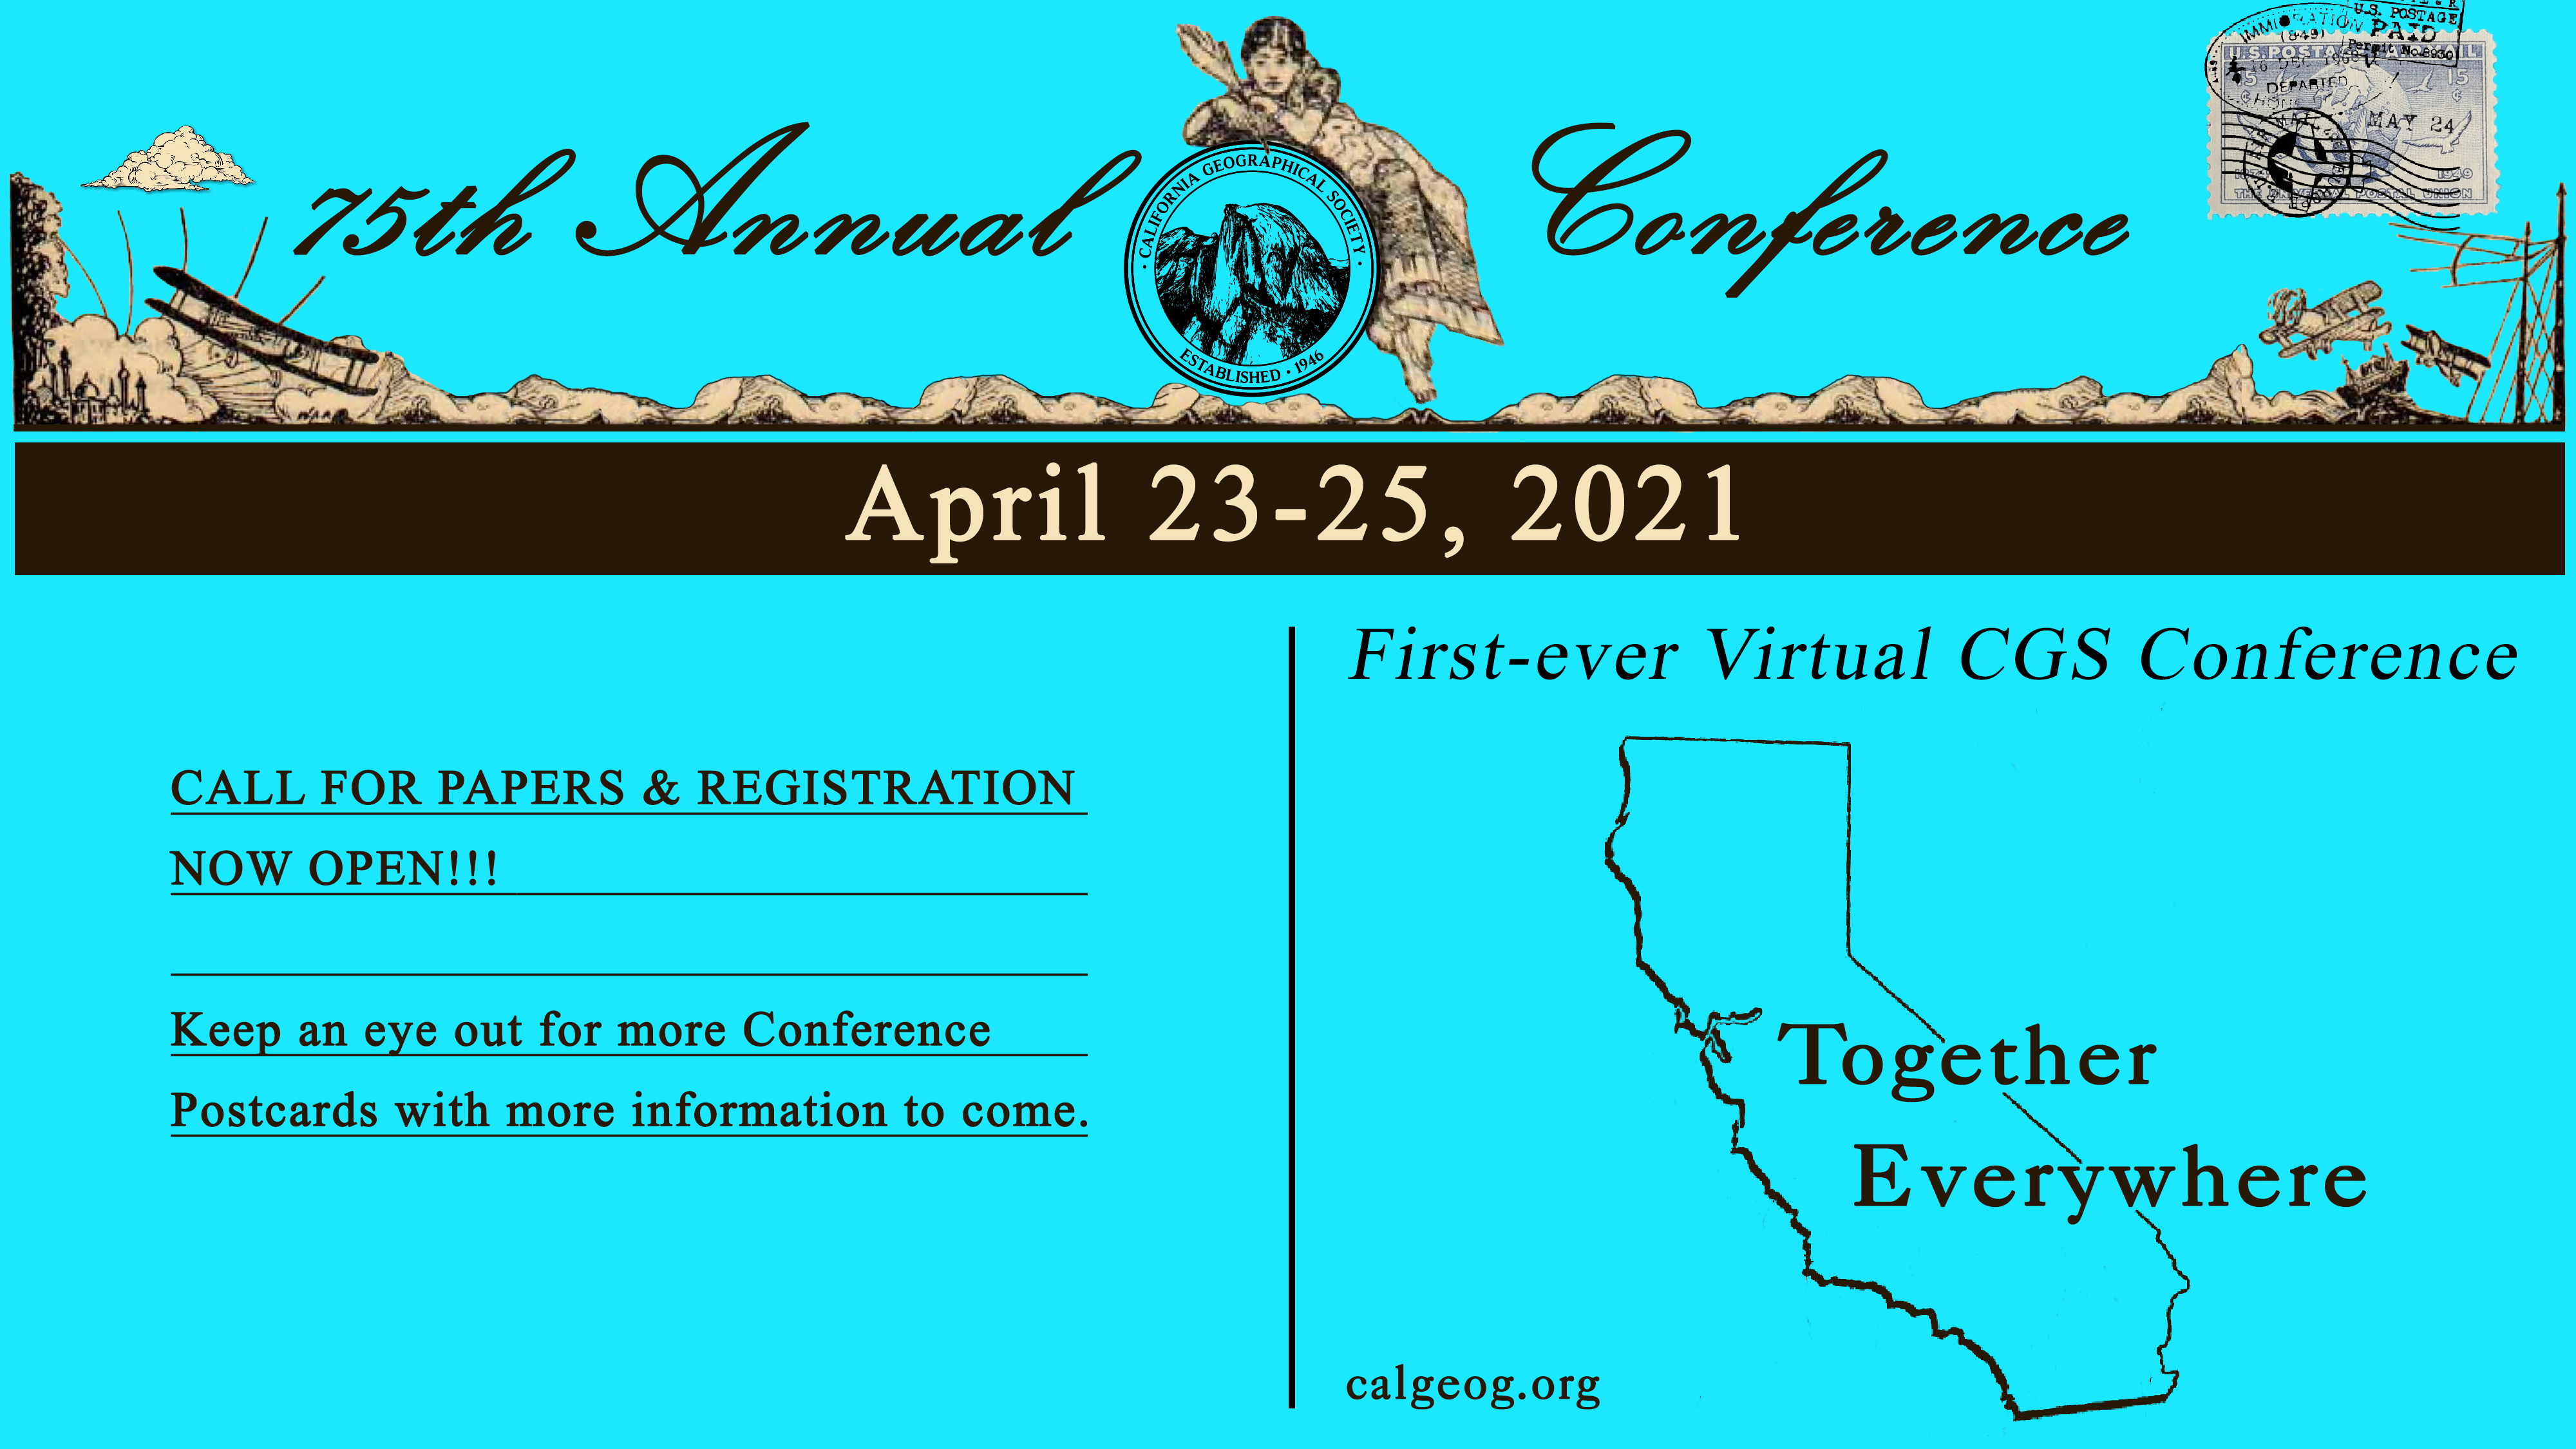 This image is a postcard announcing call for papers and registration.